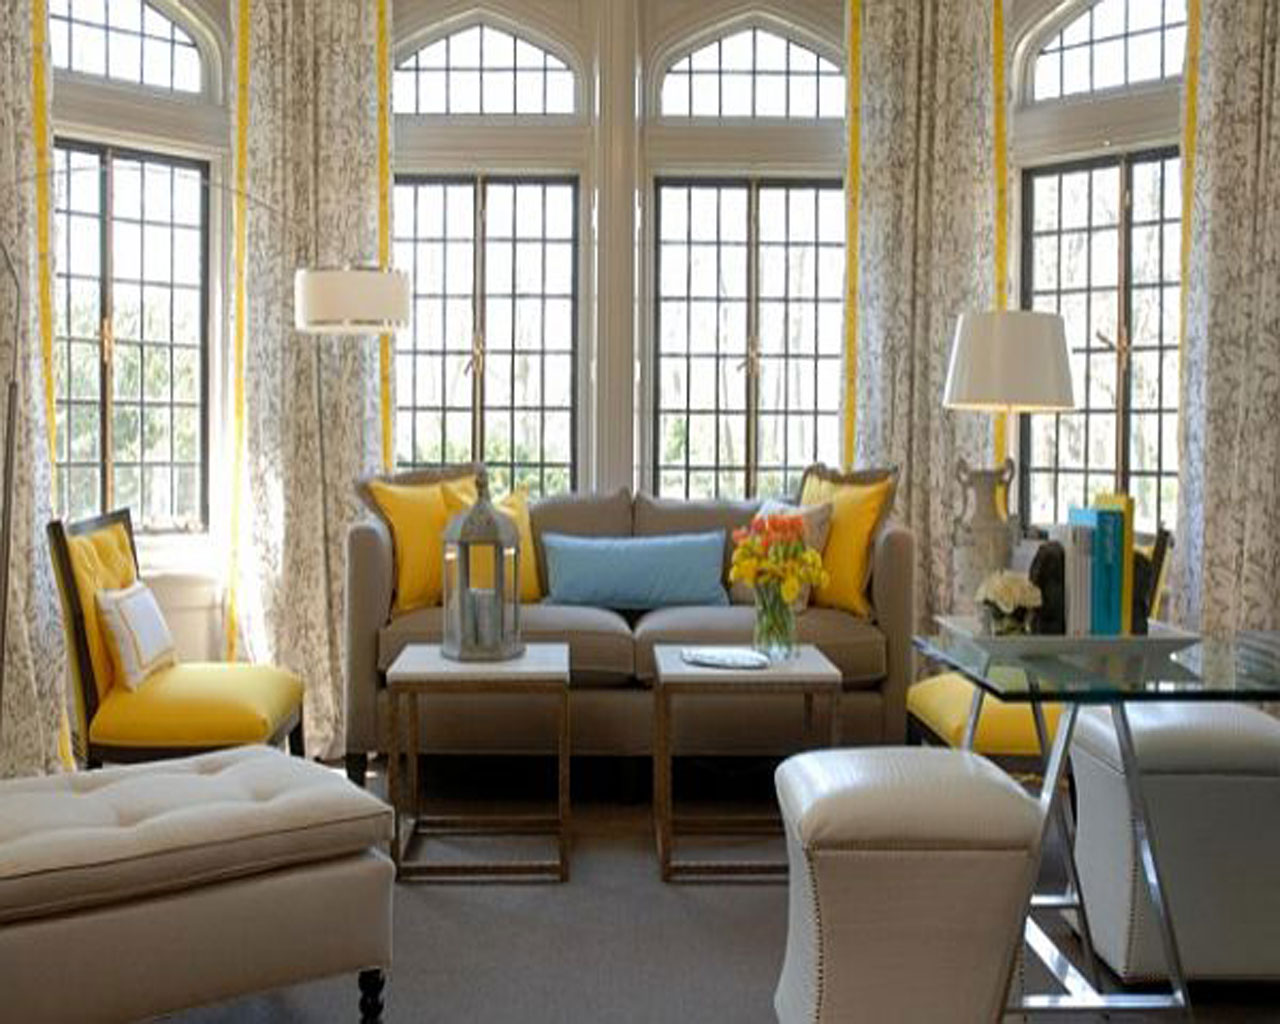 Lovely Style of Living Room Themes With Yellow Accent Of Pillows